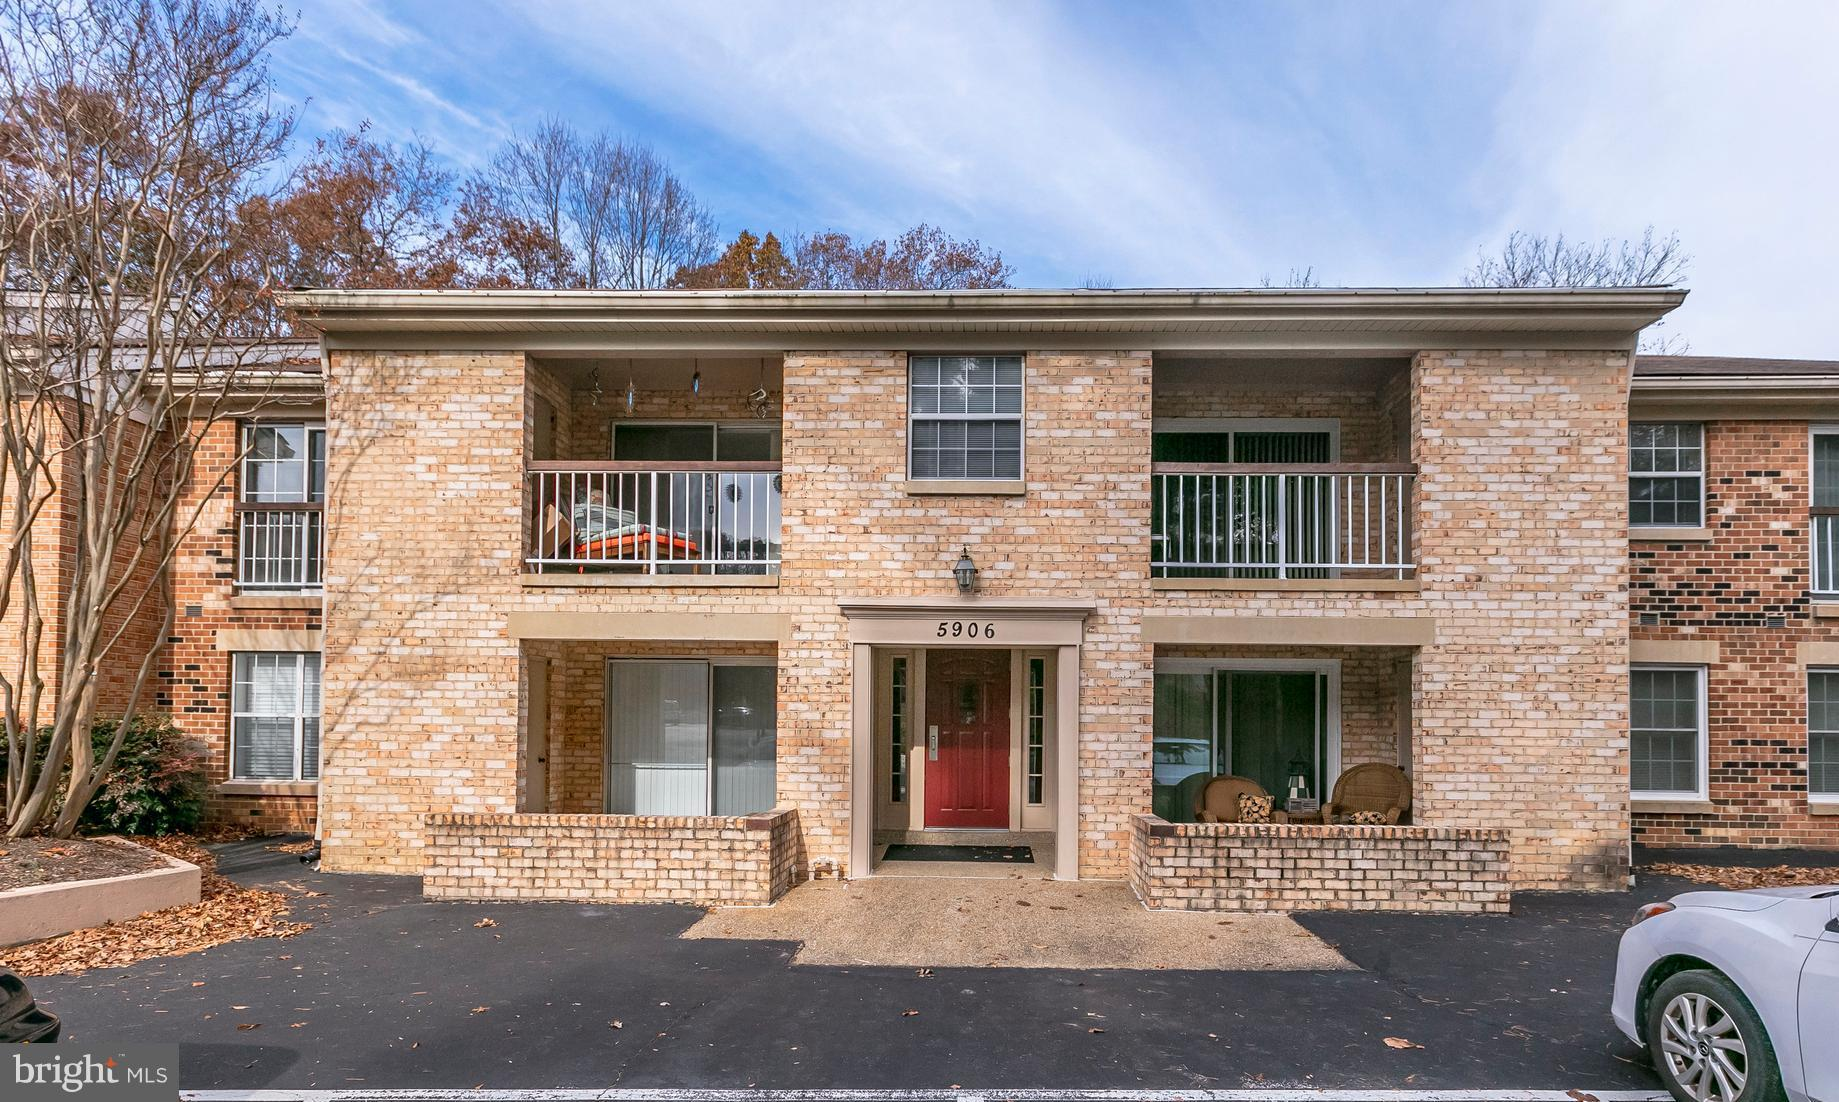 What a perfect community.  Come see this recently updated one bedroom condo and marvel at all that is Burke Cove. Close to local Shopping and and dining options and the VRE is a short distance away. Low condo fees and access to all Burke Conservancy amenities. This is a can't miss property.